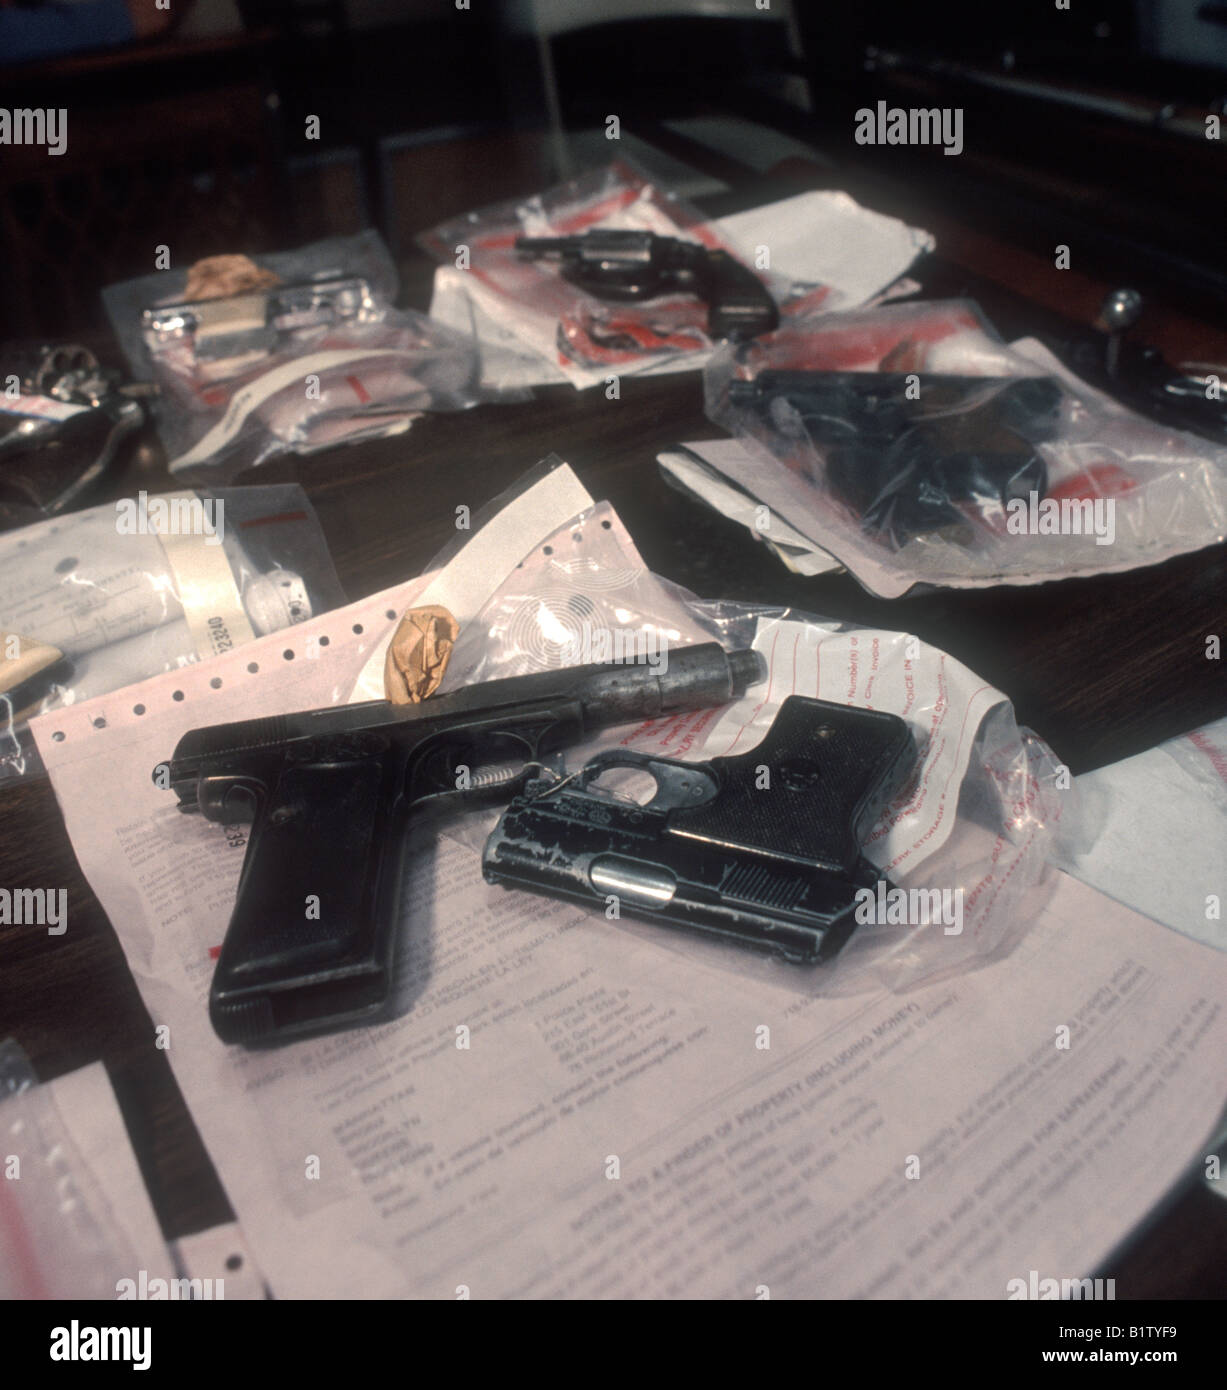 A collection of guns confiscated by the NYPD in New York - Stock Image